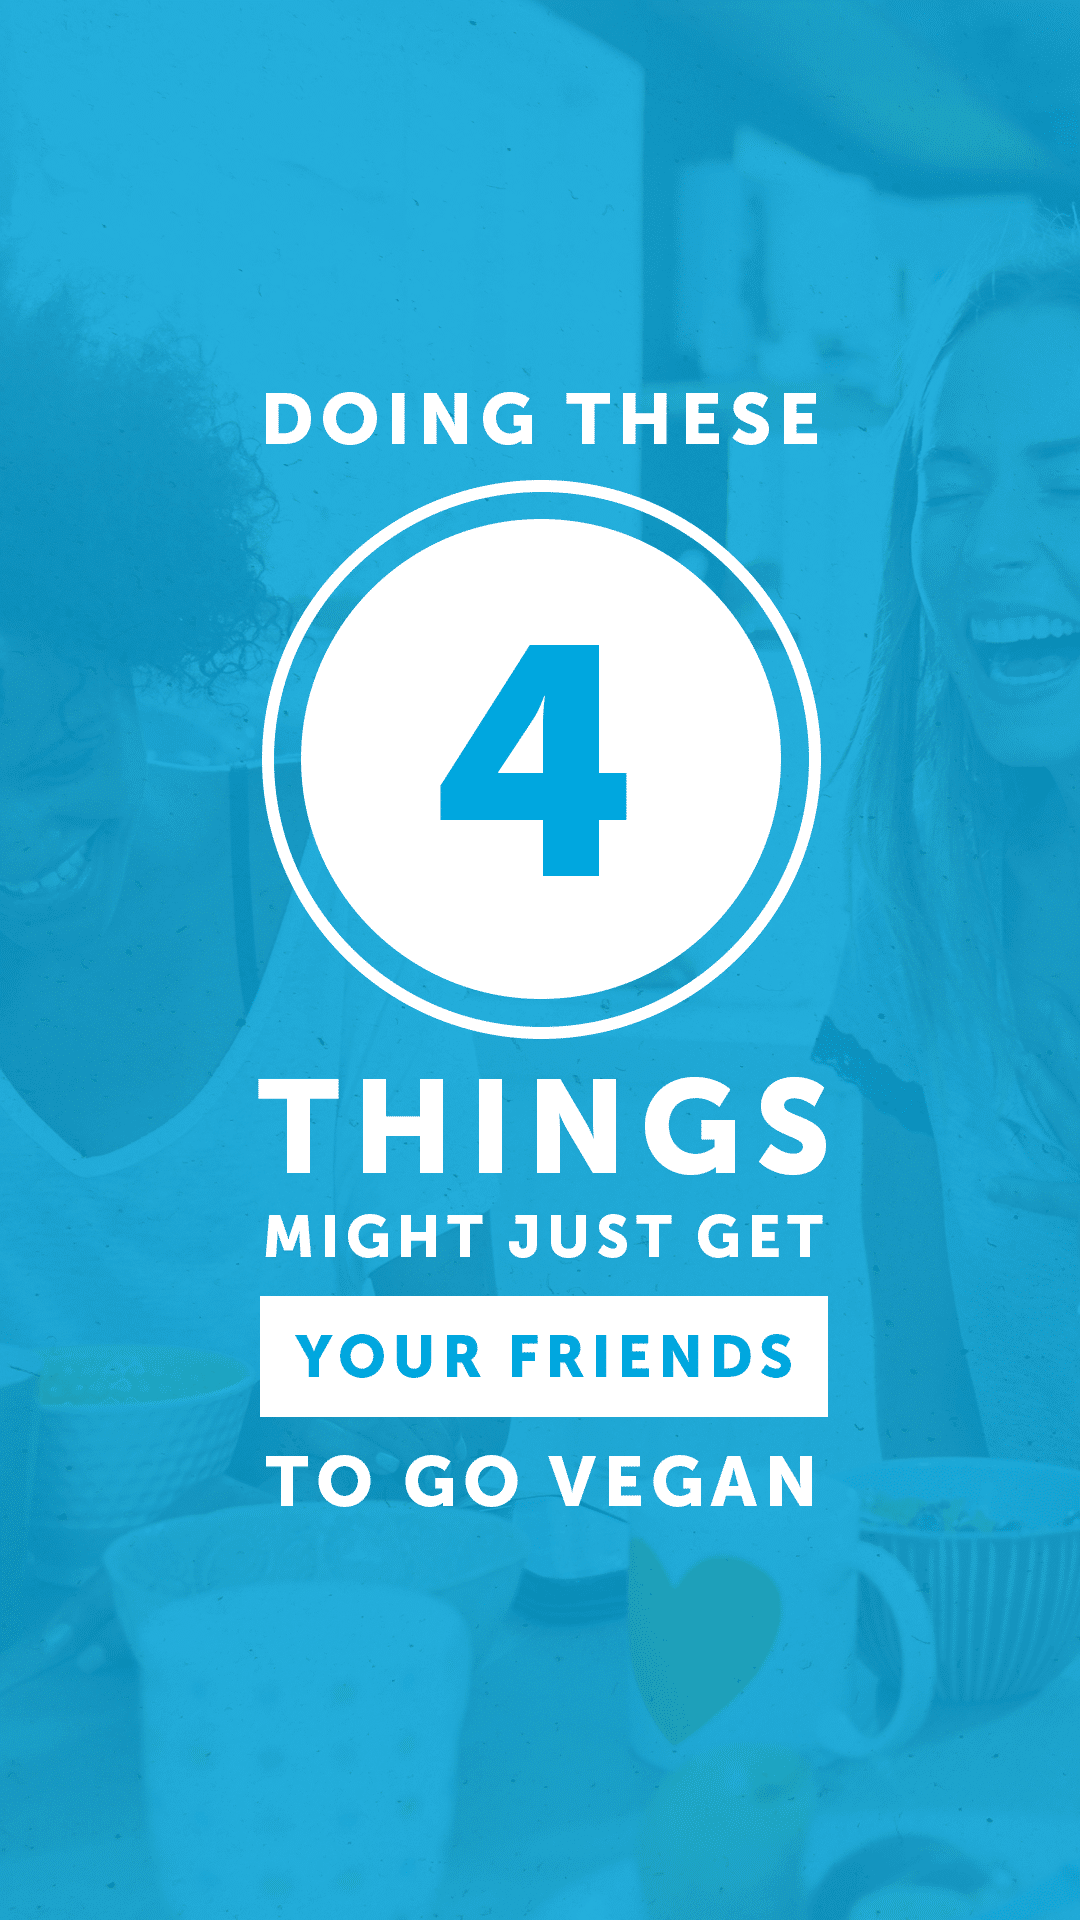 Doing These 4 Things Might Just Get Your Friends to Go Vegan